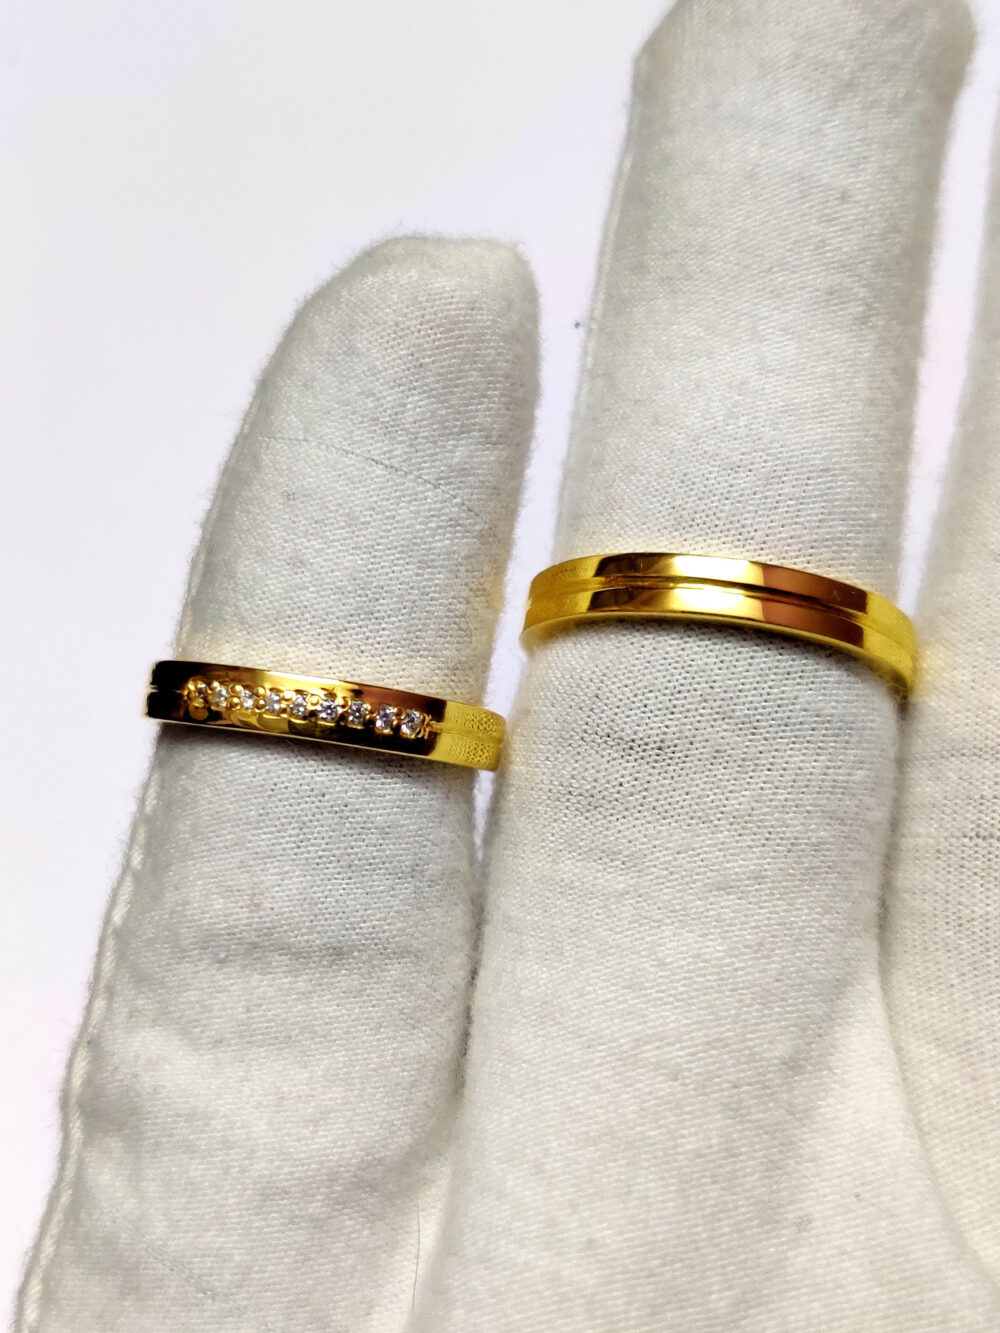 Silver Couple Wedding Bands Ring Gold Rhodium Plated Rings For Band Set His & Her Promise